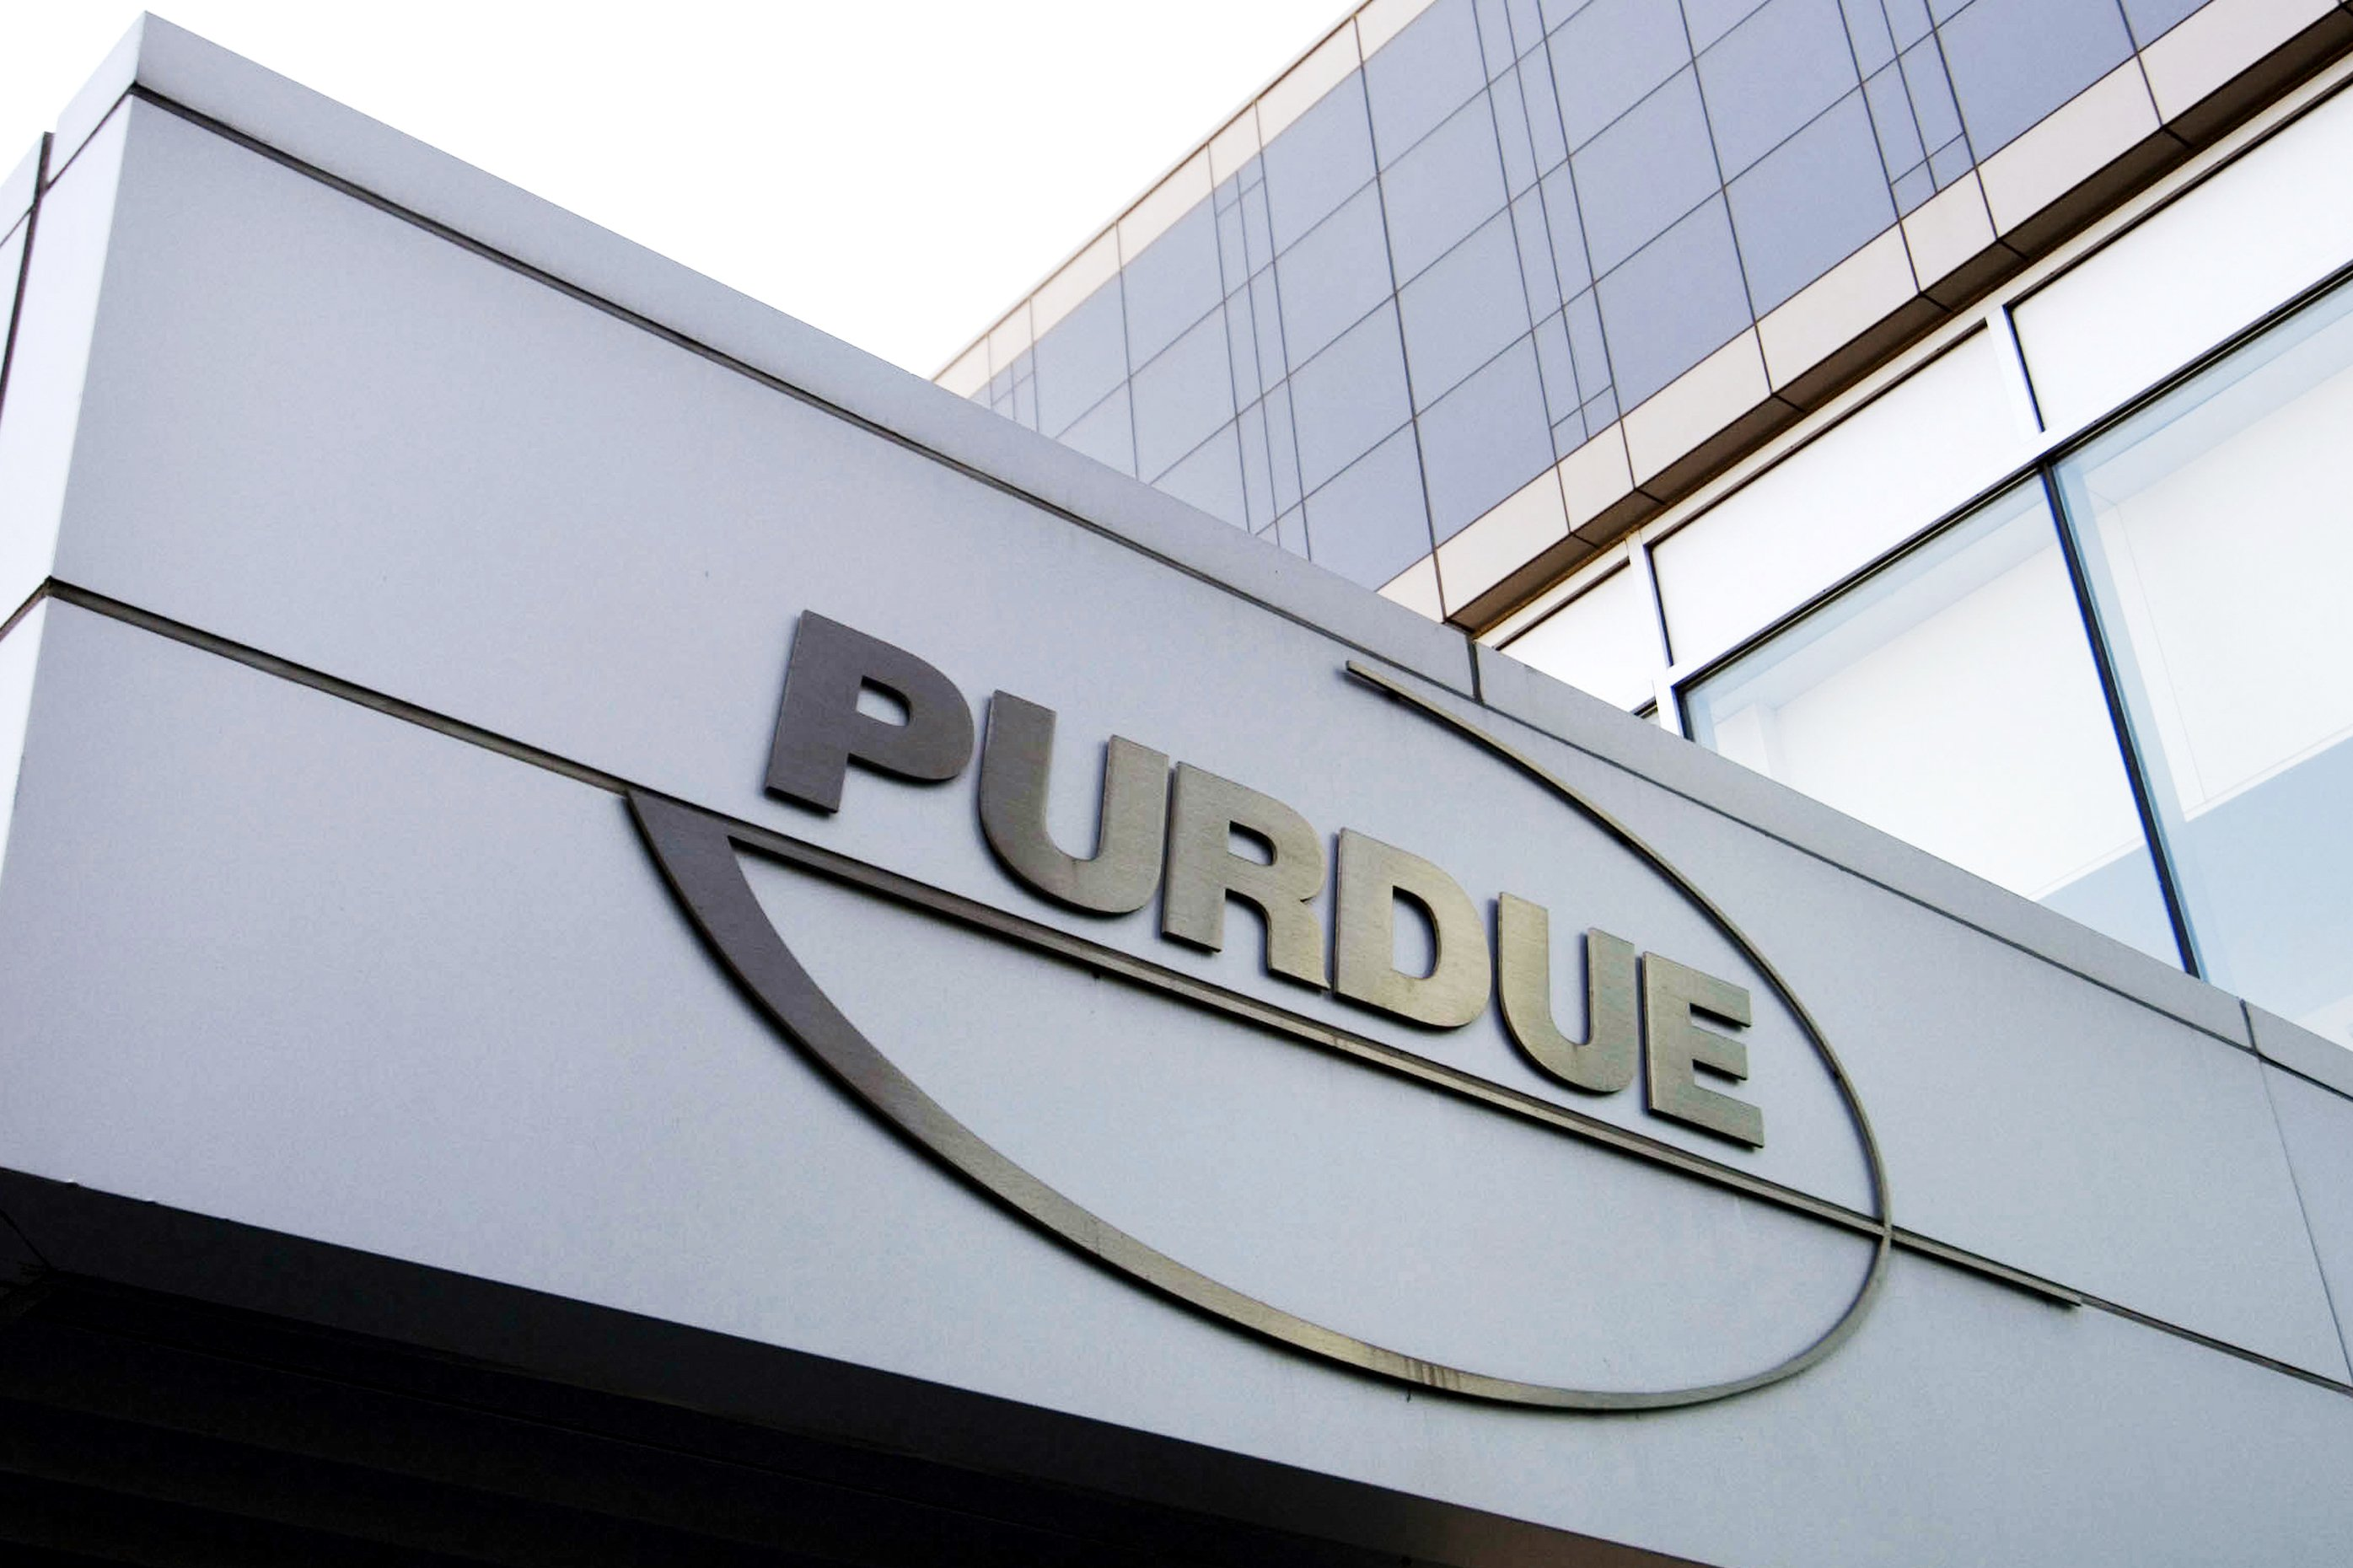 BREAKING: Justice Department officials tell The Associated Press that Purdue Pharma, the company that makes OxyContin, will plead guilty to three federal criminal charges as part of a settlement of more than $8 billion.